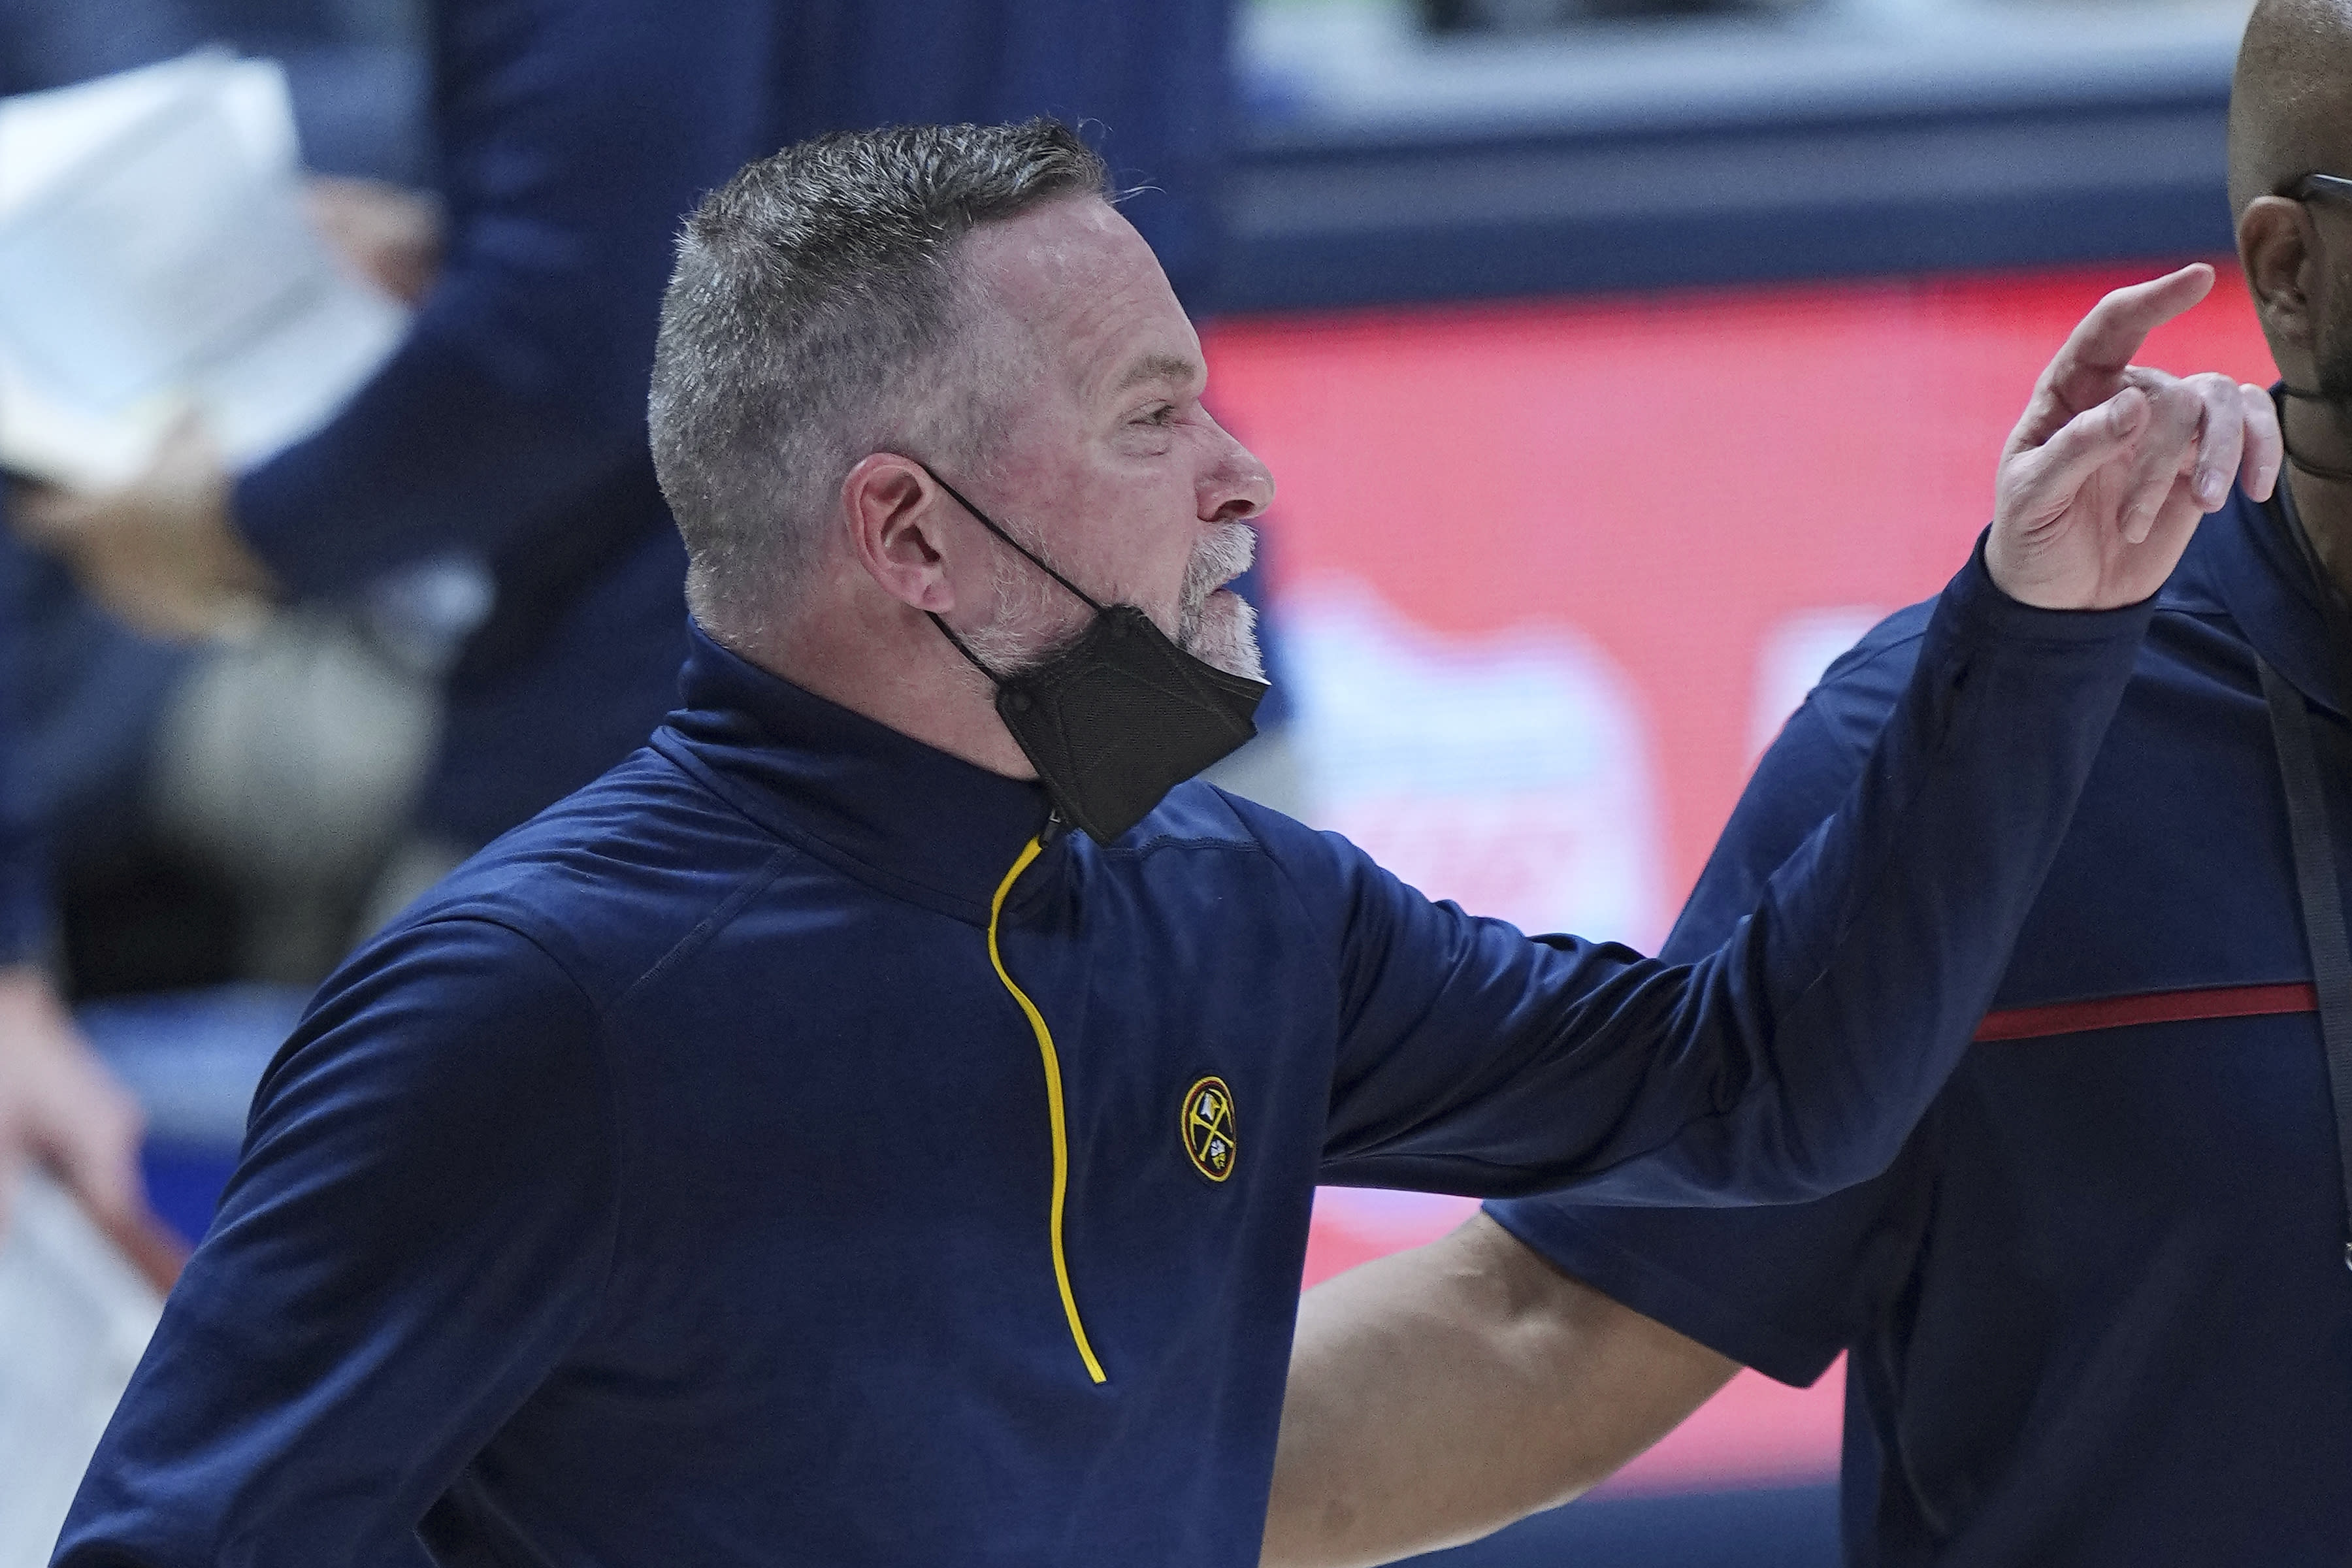 Denver Nuggets coach Michael Malone reacts after being ejected during the second quarter of the team's NBA basketball game against the San Antonio Spurs on Wednesday, April 7, 2021, in Denver. (AP Photo/Jack Dempsey)